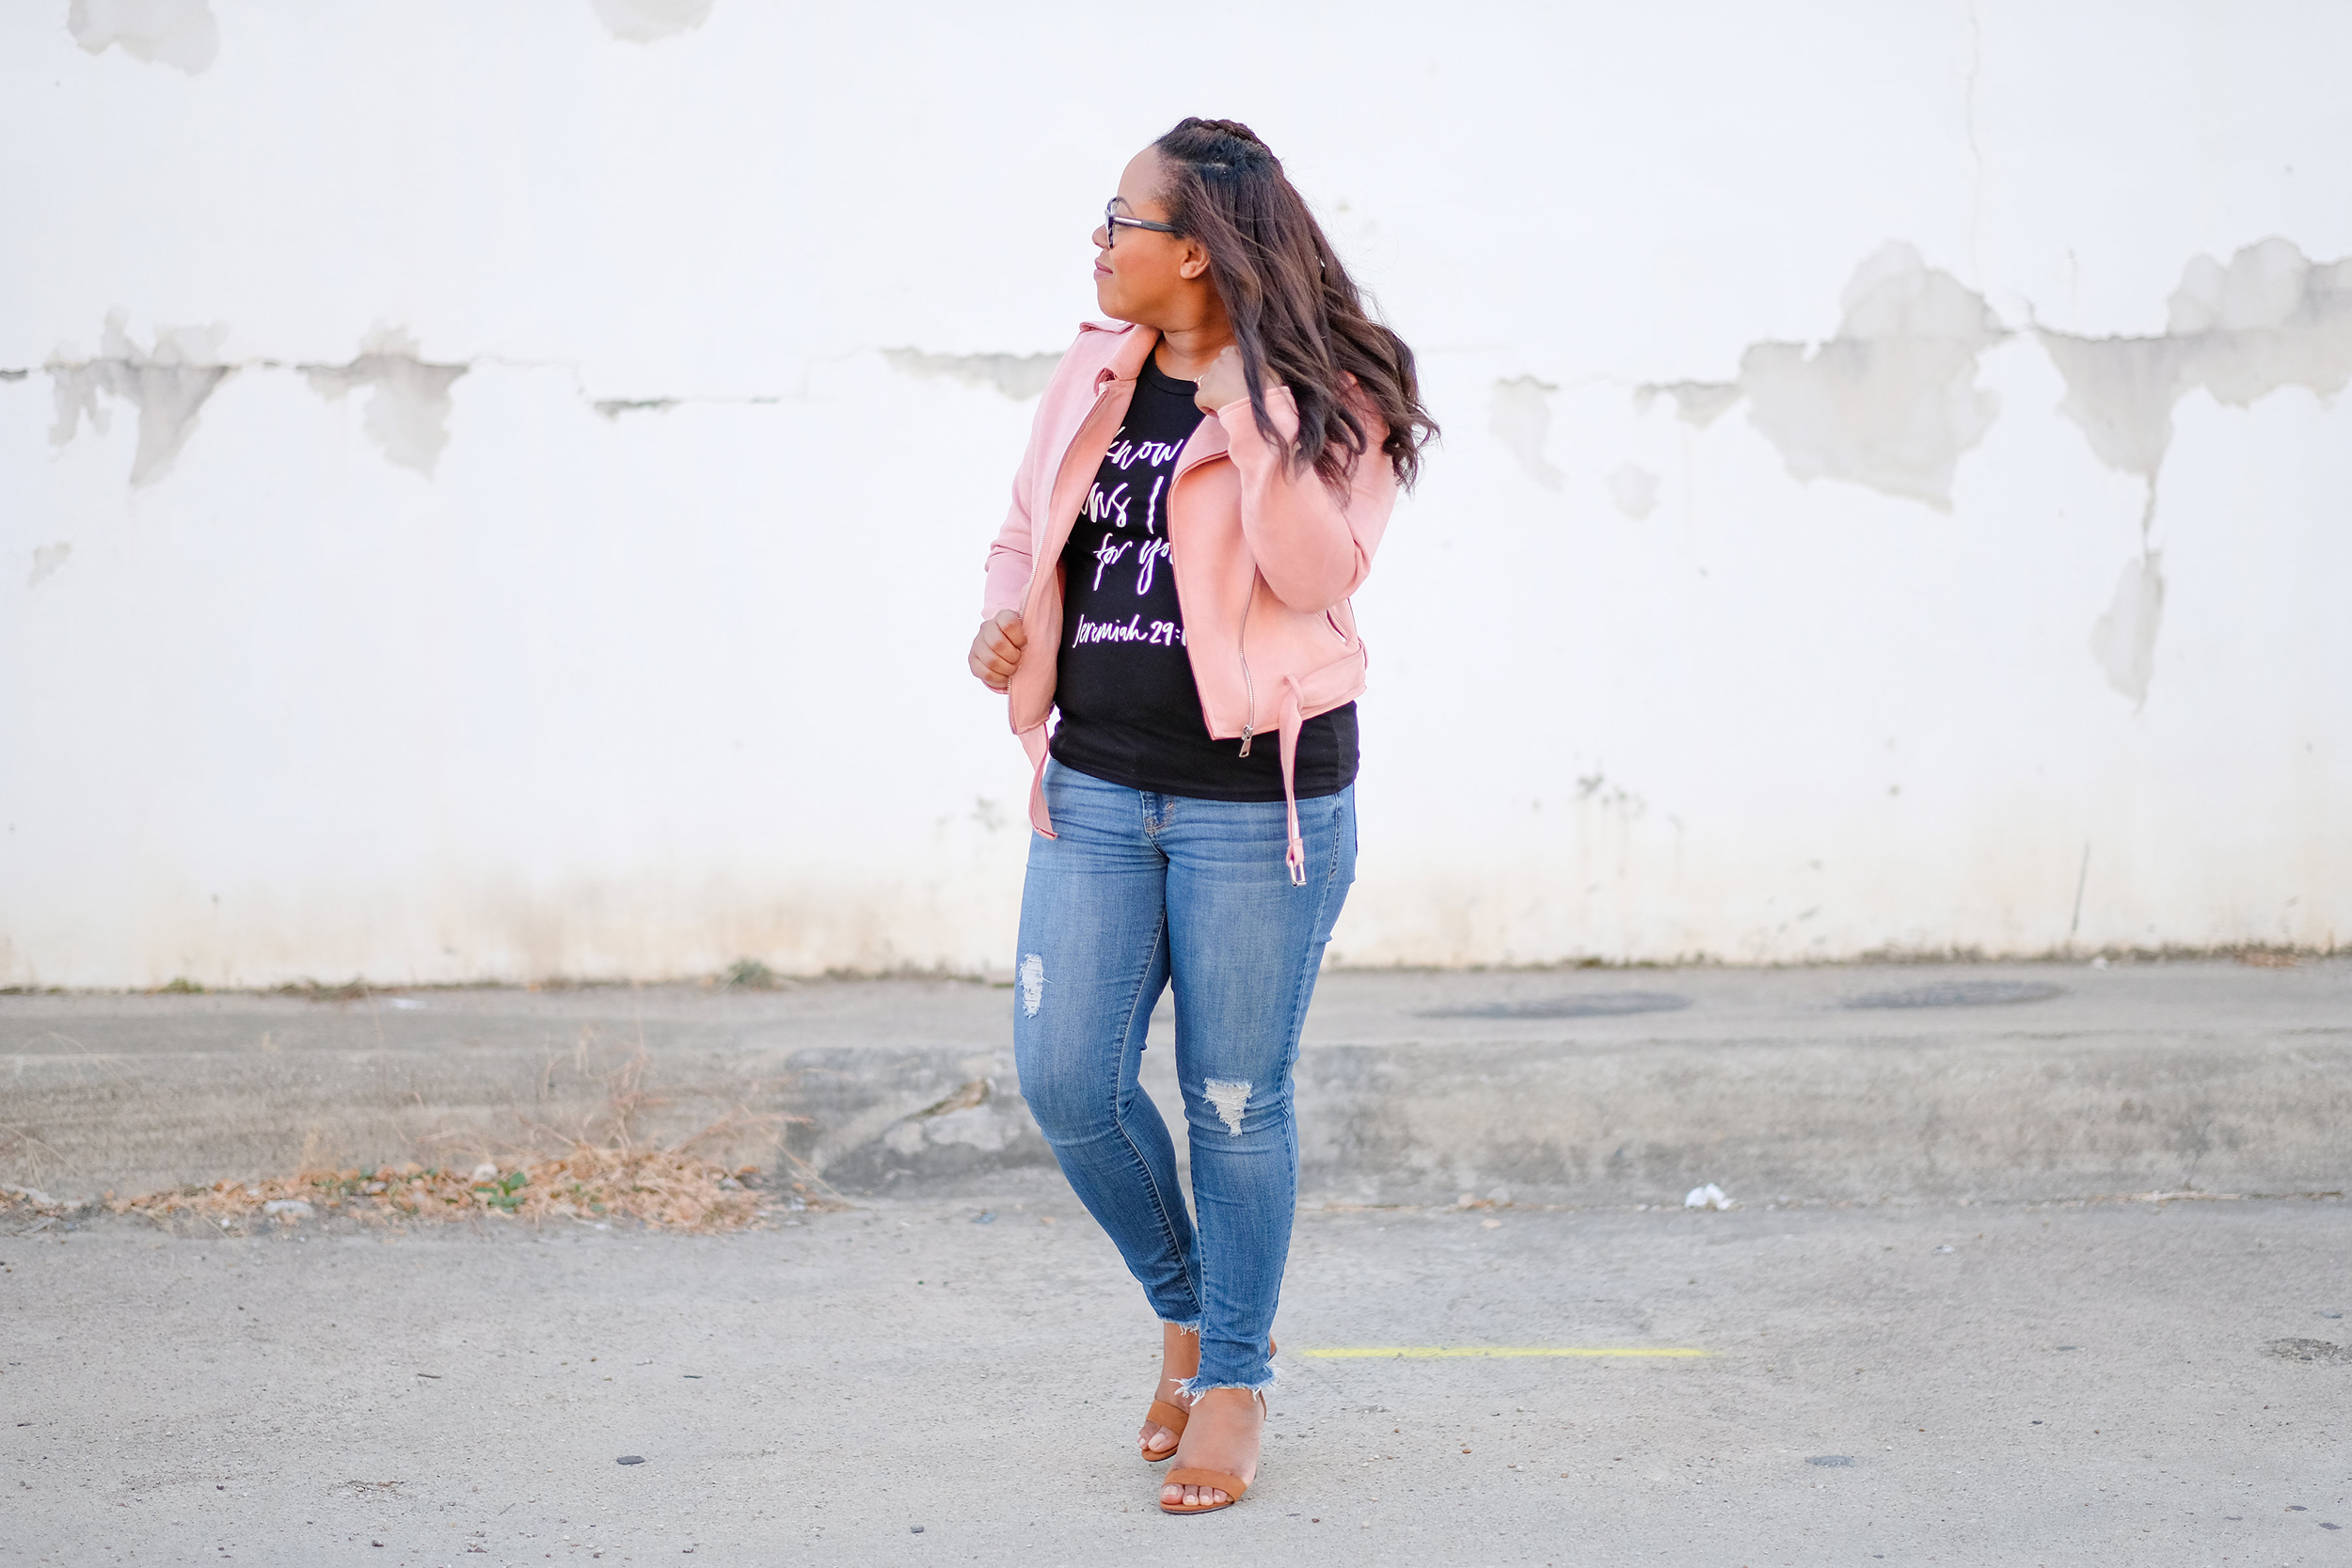 13 Tips for Finding Your Personal Style - Personal Style Tips - Bianca Dottin